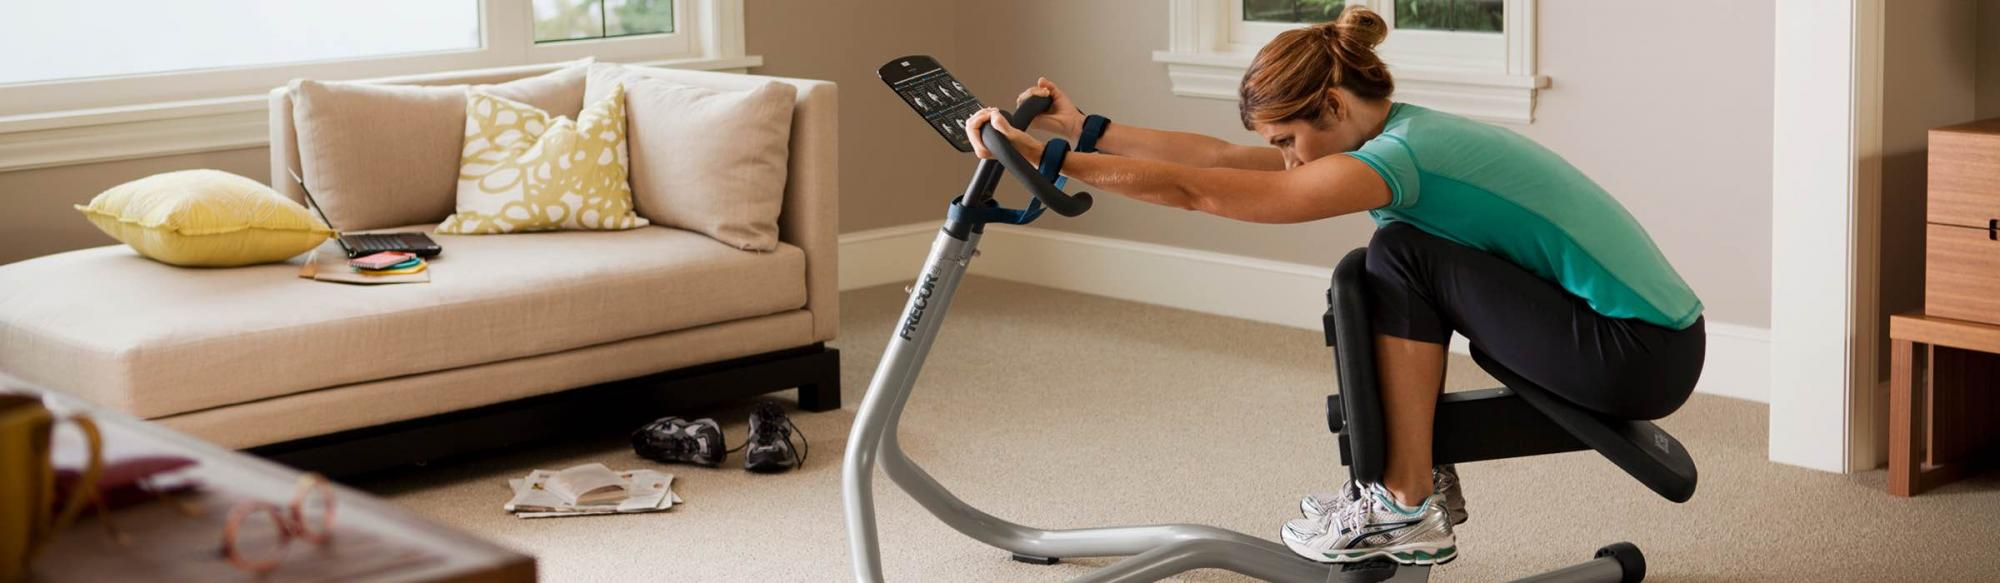 Inland empire special offers precor us